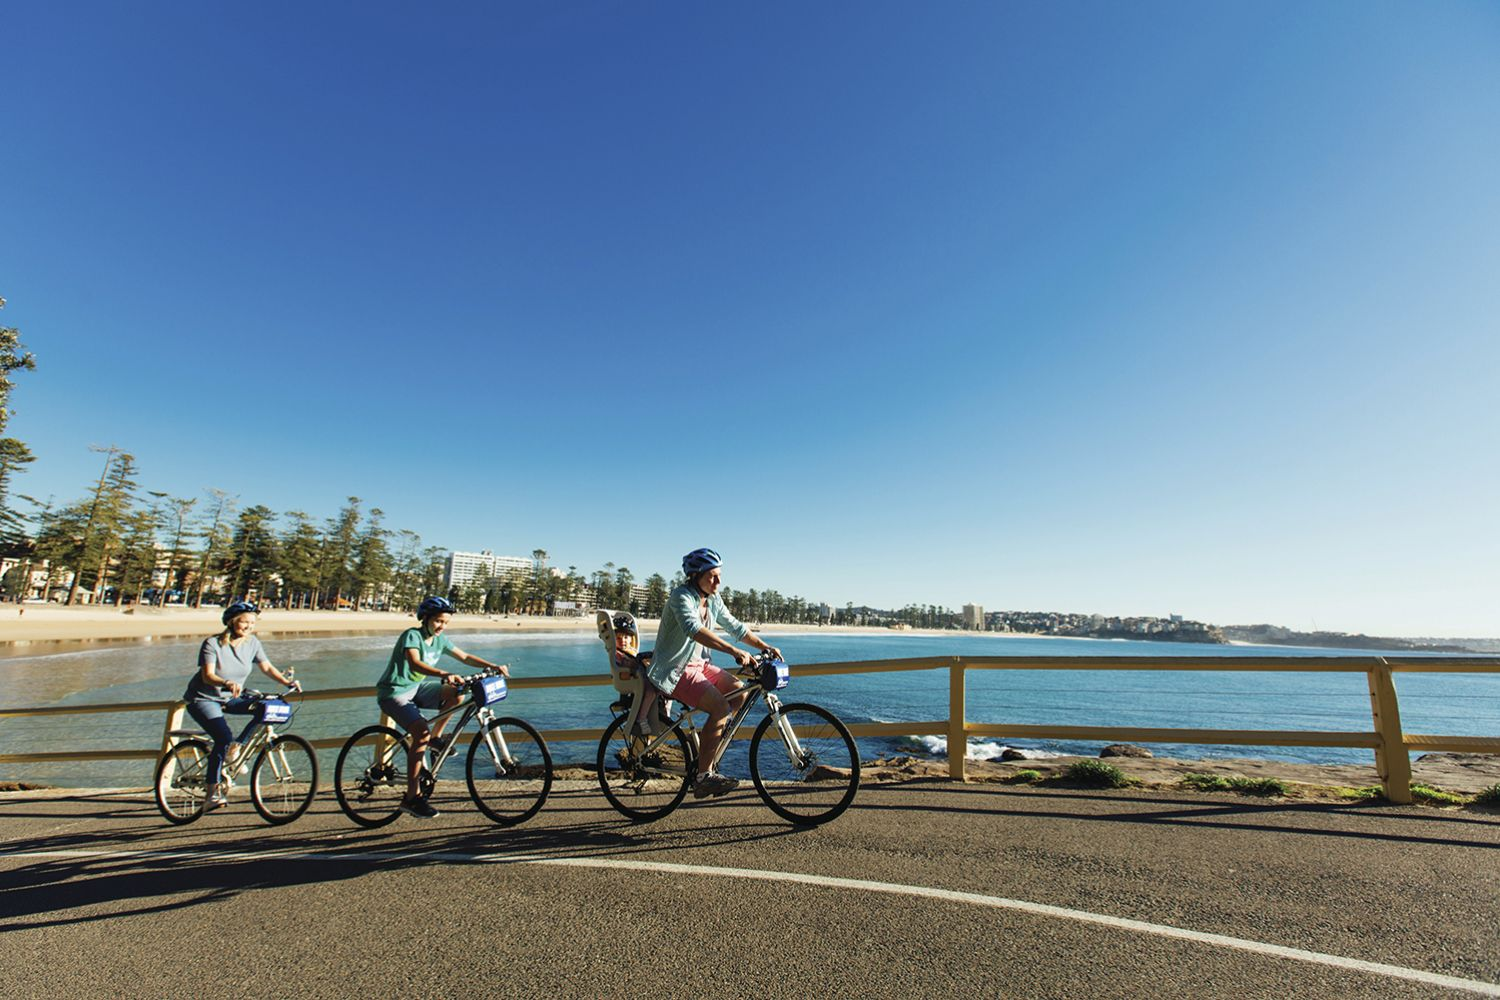 Family enjoying a bike ride at Manly Beach on Sydney's northern suburbs